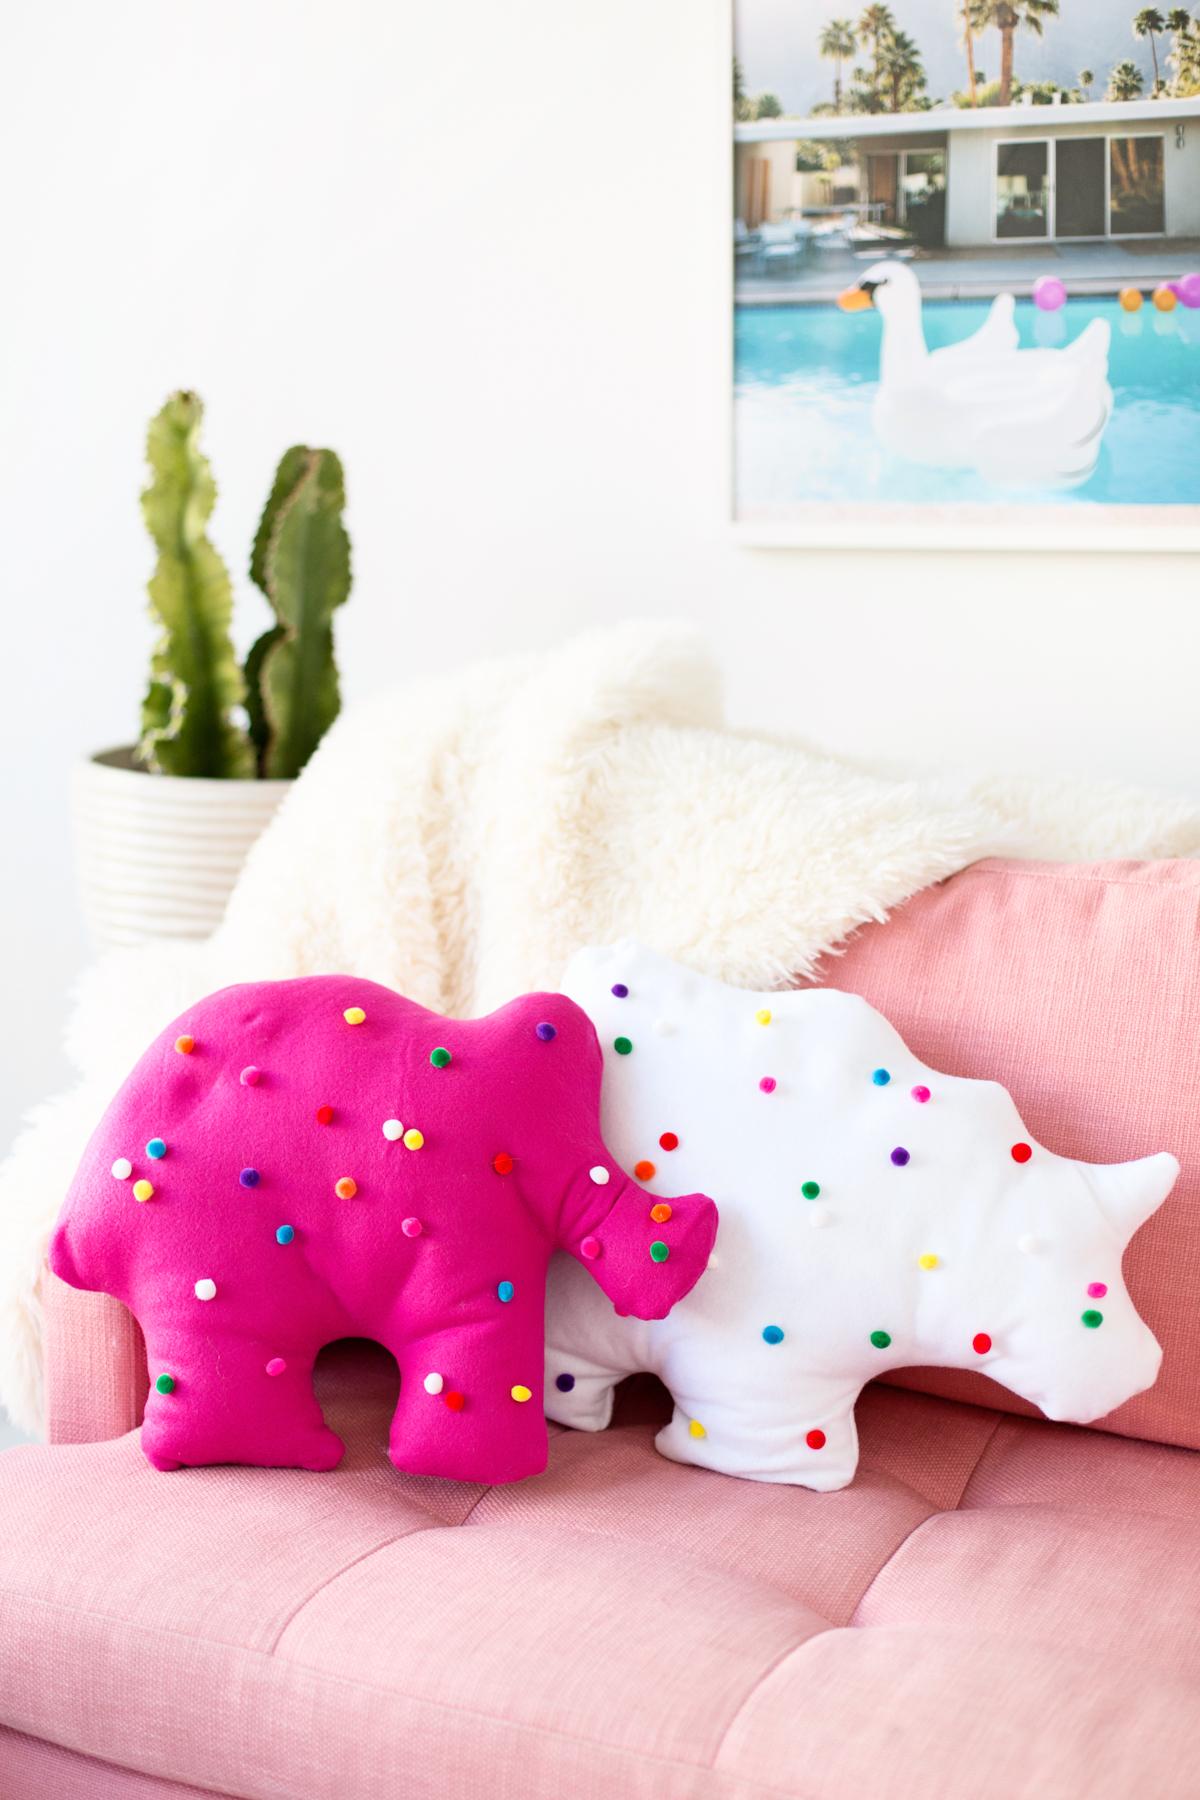 Animal Pillows : DIY Circus Animal Cookie Pillows - Studio DIY